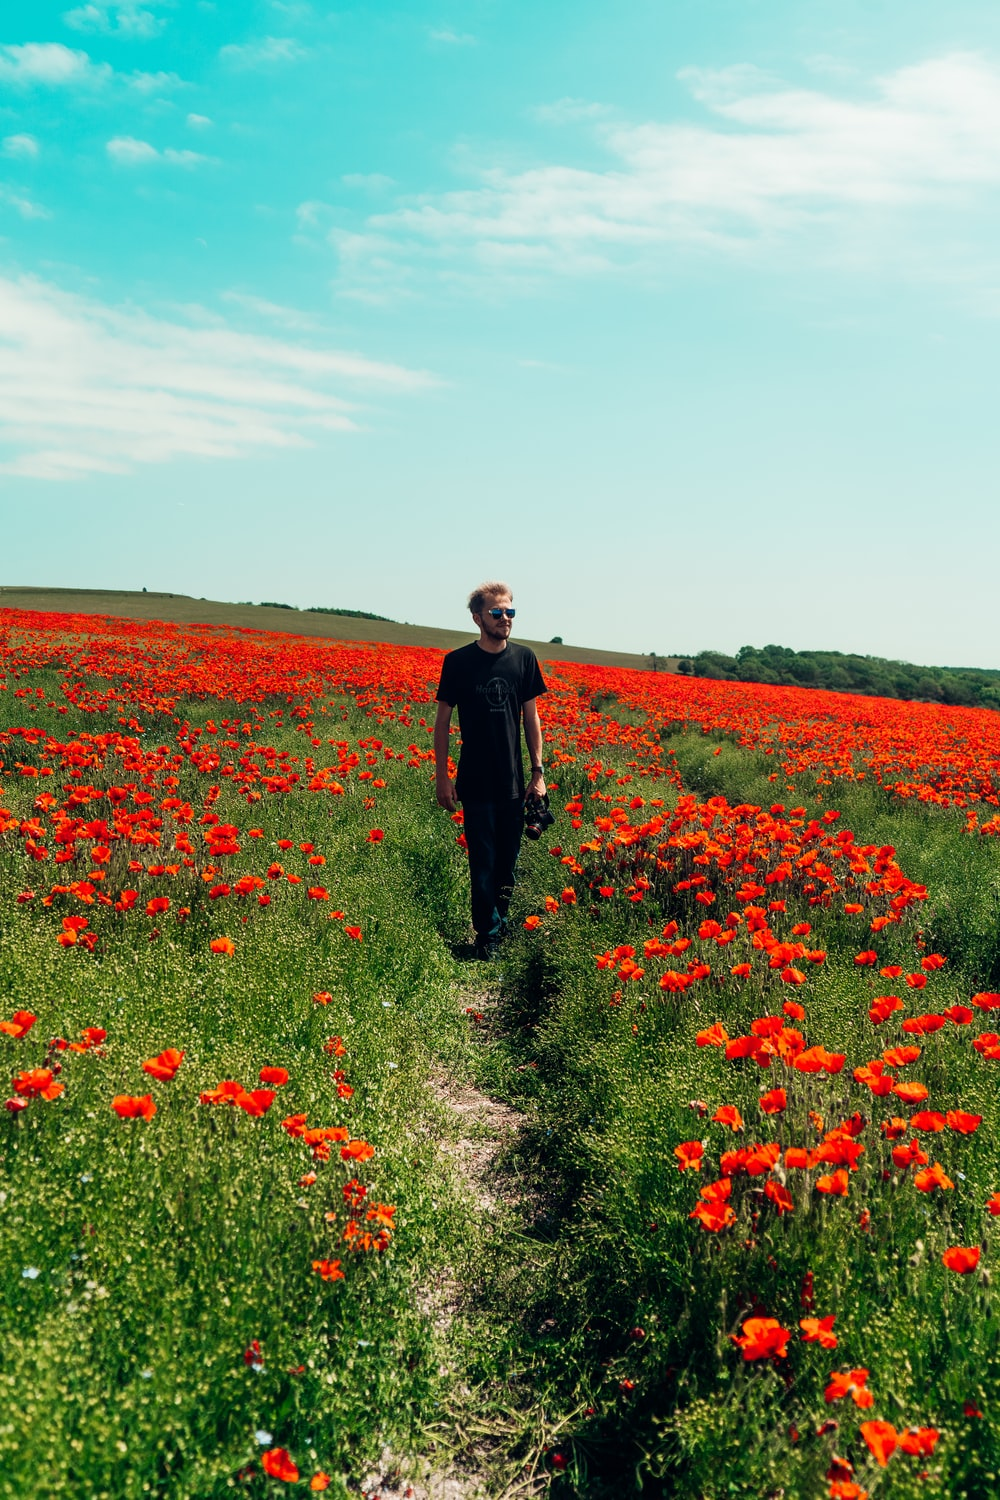 man in black jacket standing on red flower field during daytime